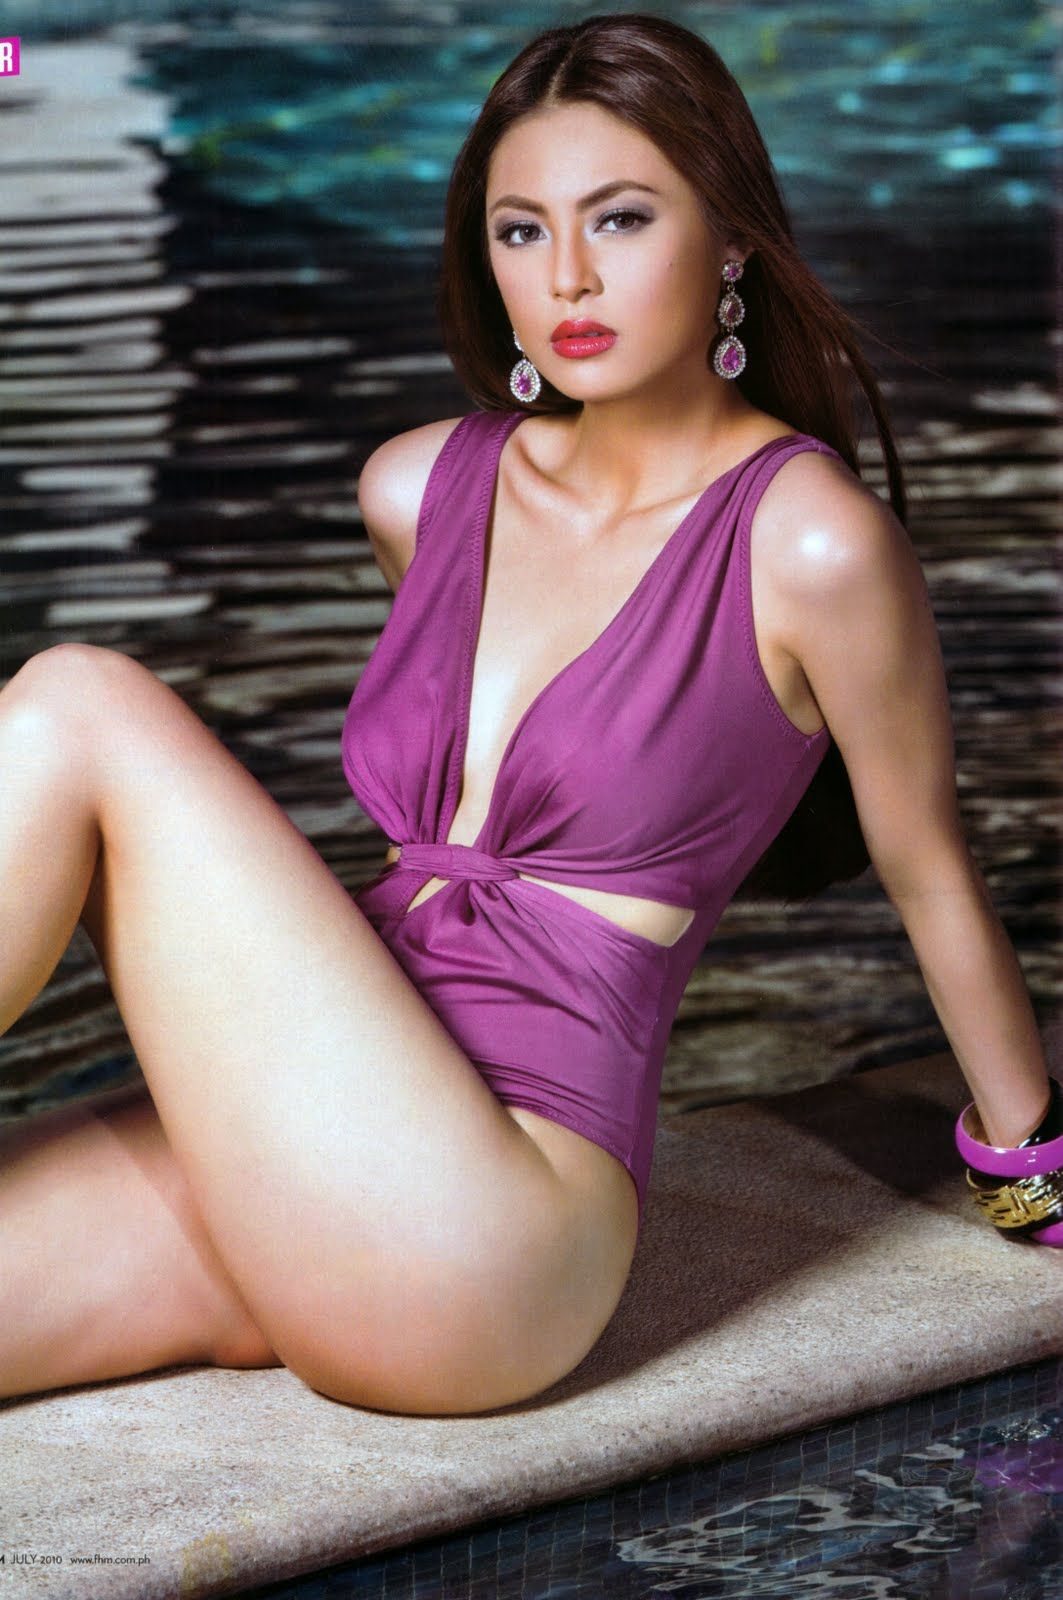 sam pinto leads fhm�s 100 sexiest women 2012 poll angel